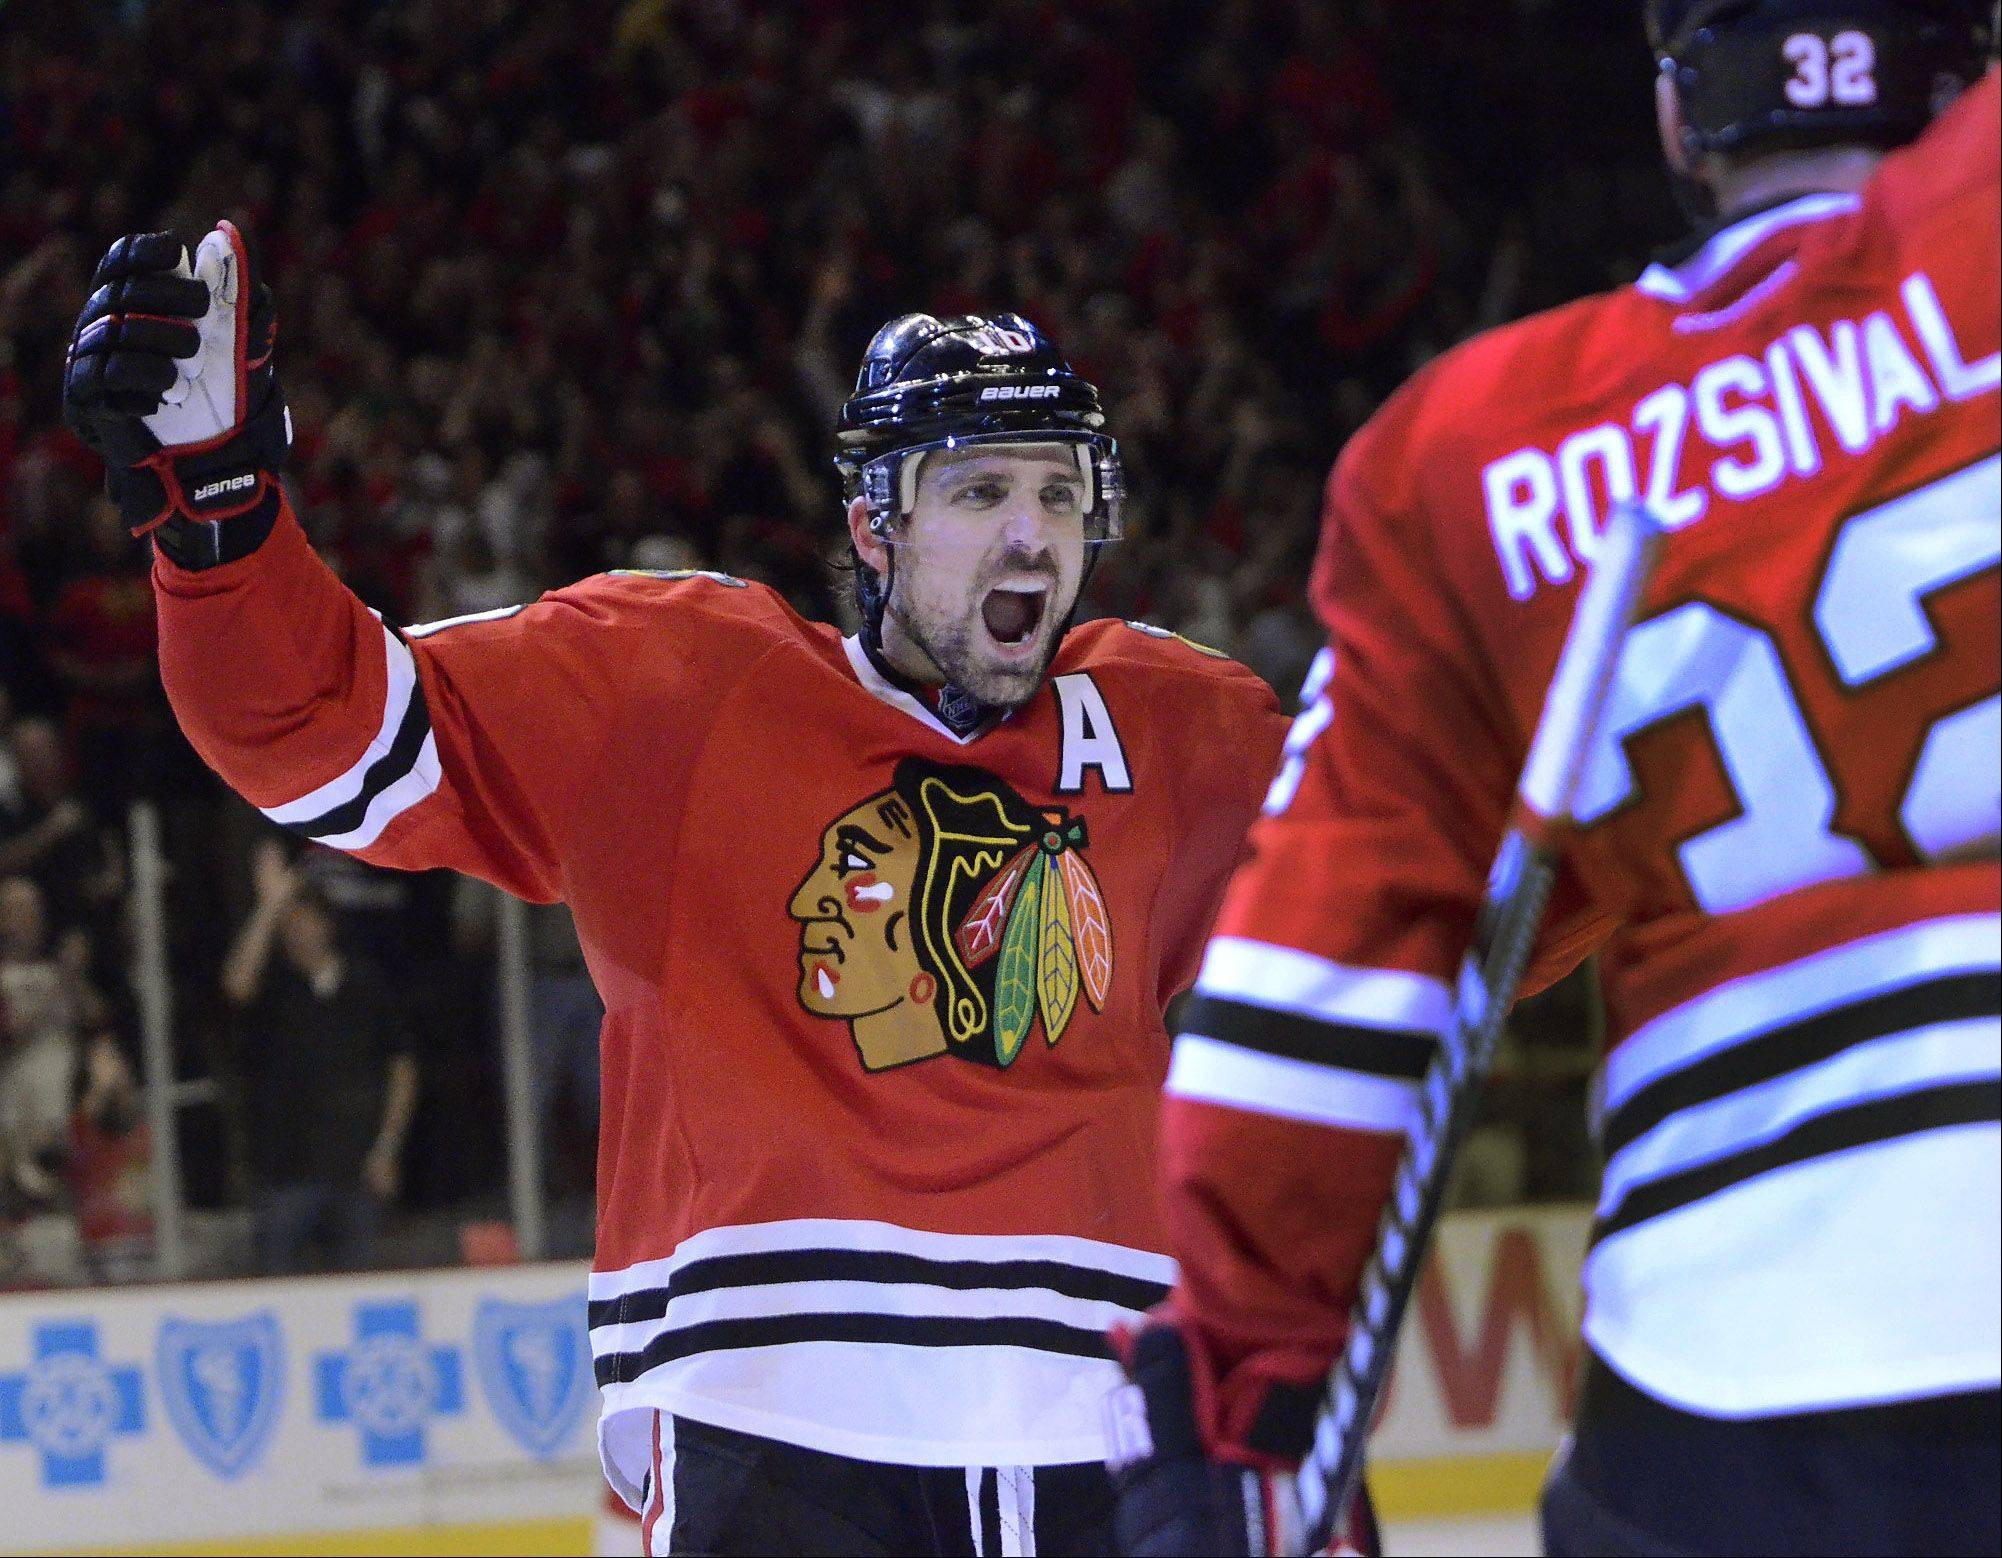 Patrick Sharp celebrates after assisting on Johnny Oduya's goal in the 3rd period during game 1 of Western Conference semifinals between the Chicago Blackhawks and the Detroit Red Wings. Sharp was also 1st star of the game.